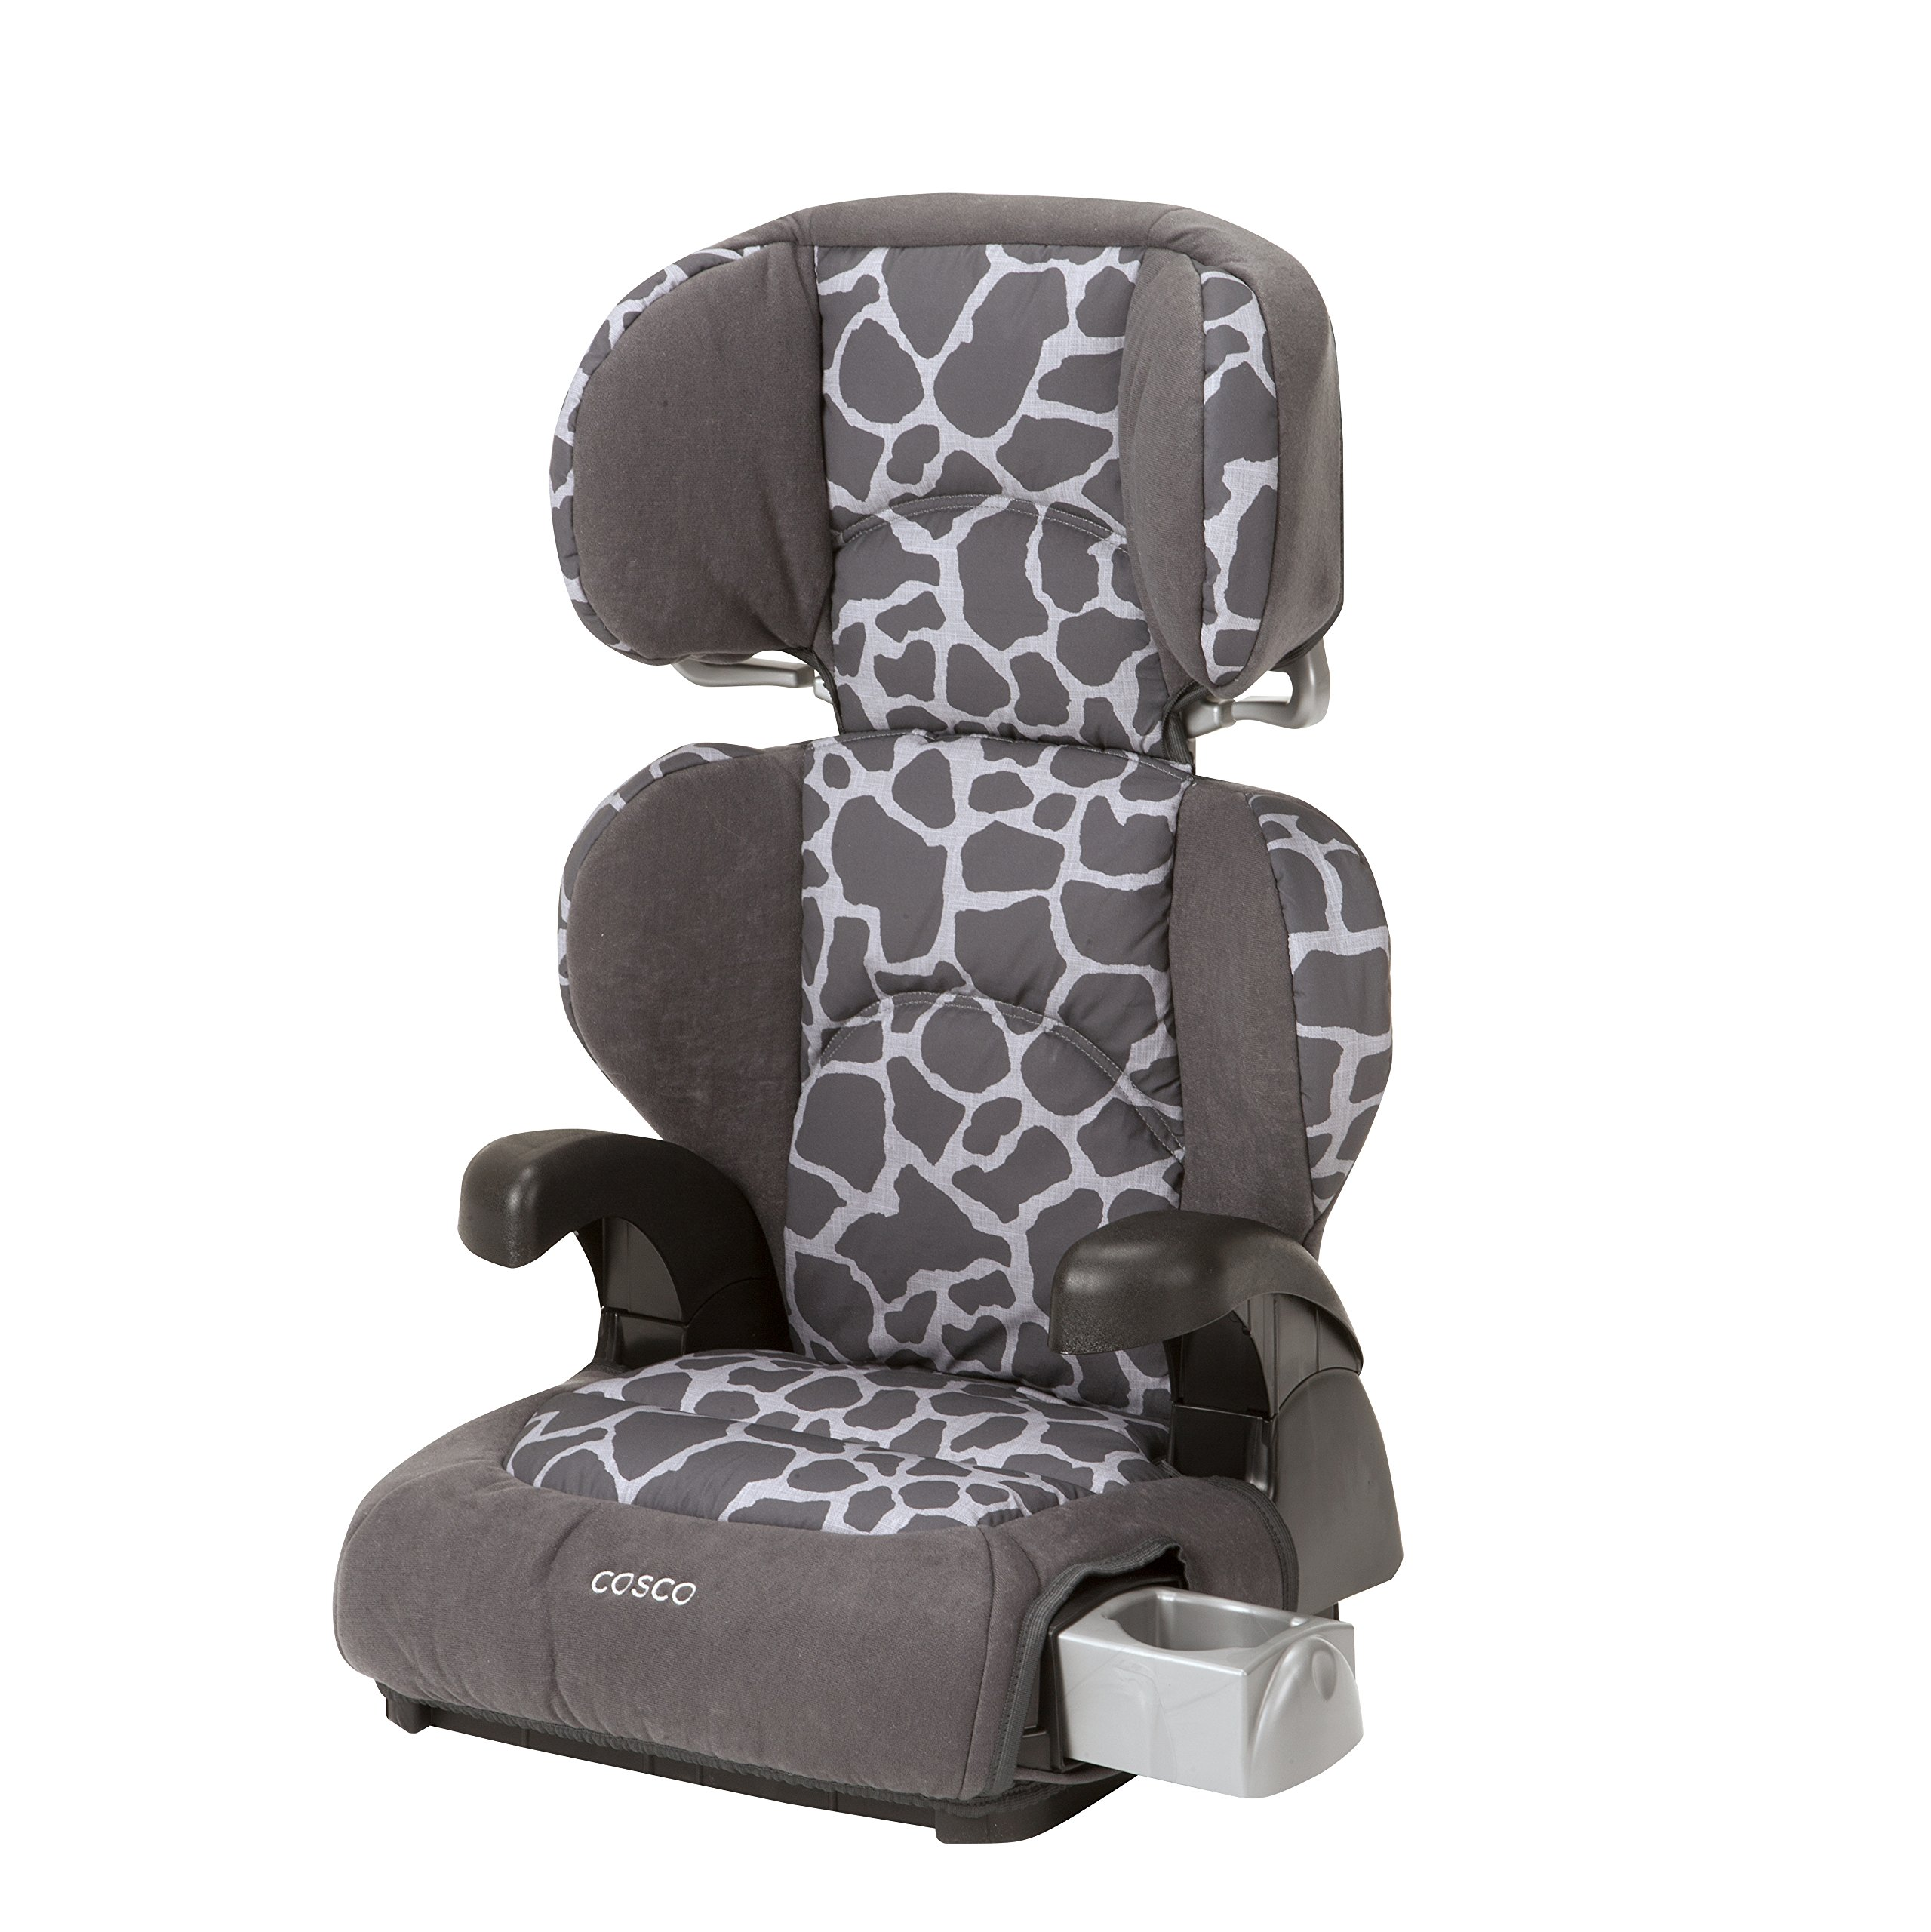 Cosco Pronto! Booster Car Seat for Children, Adjustable Headrest, Integrated Cup Holders, Kimba